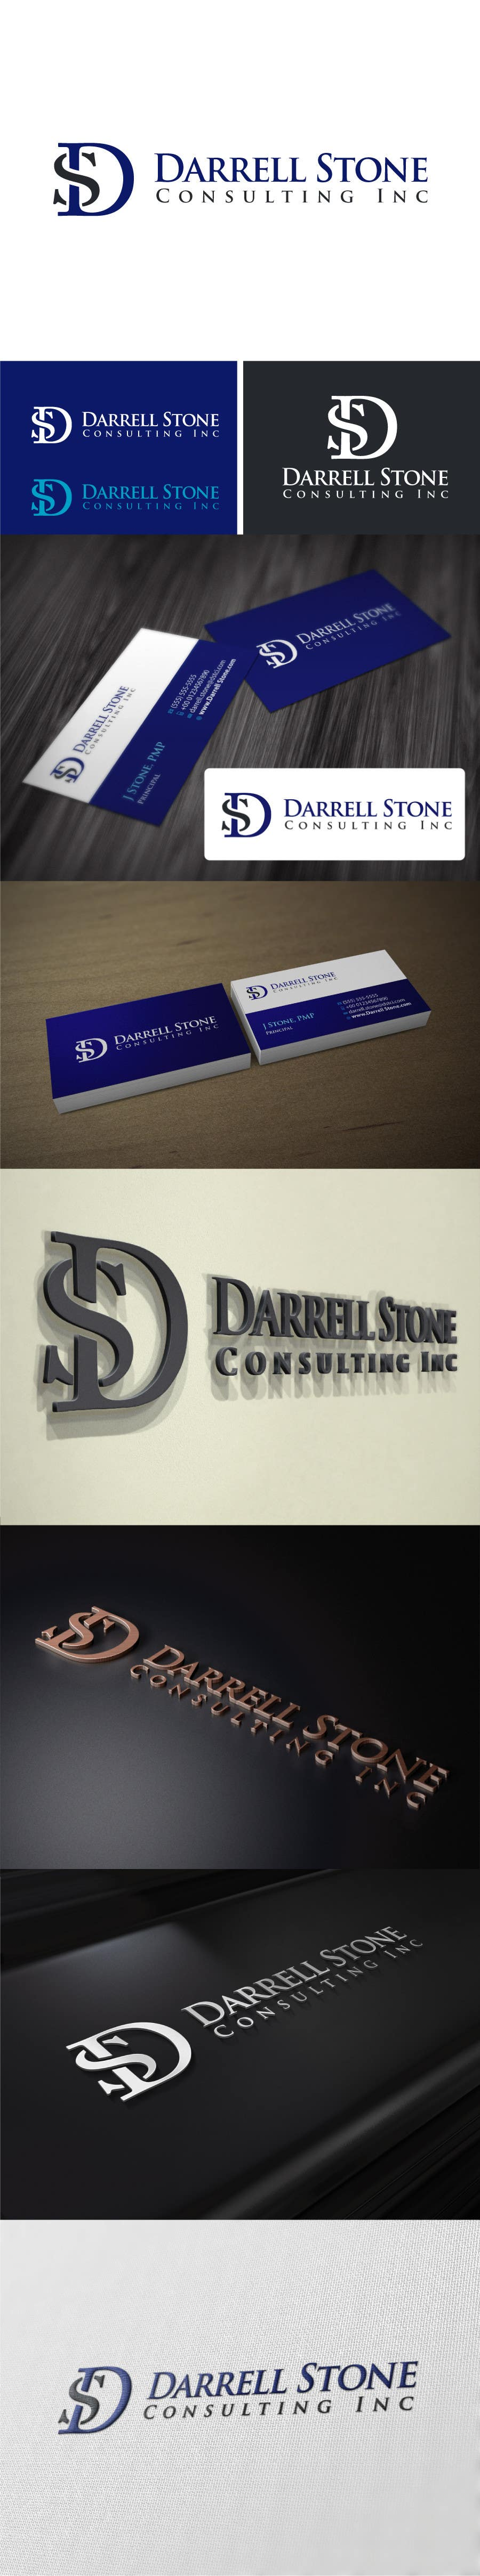 #129 for Logo and business card design by dalancer07